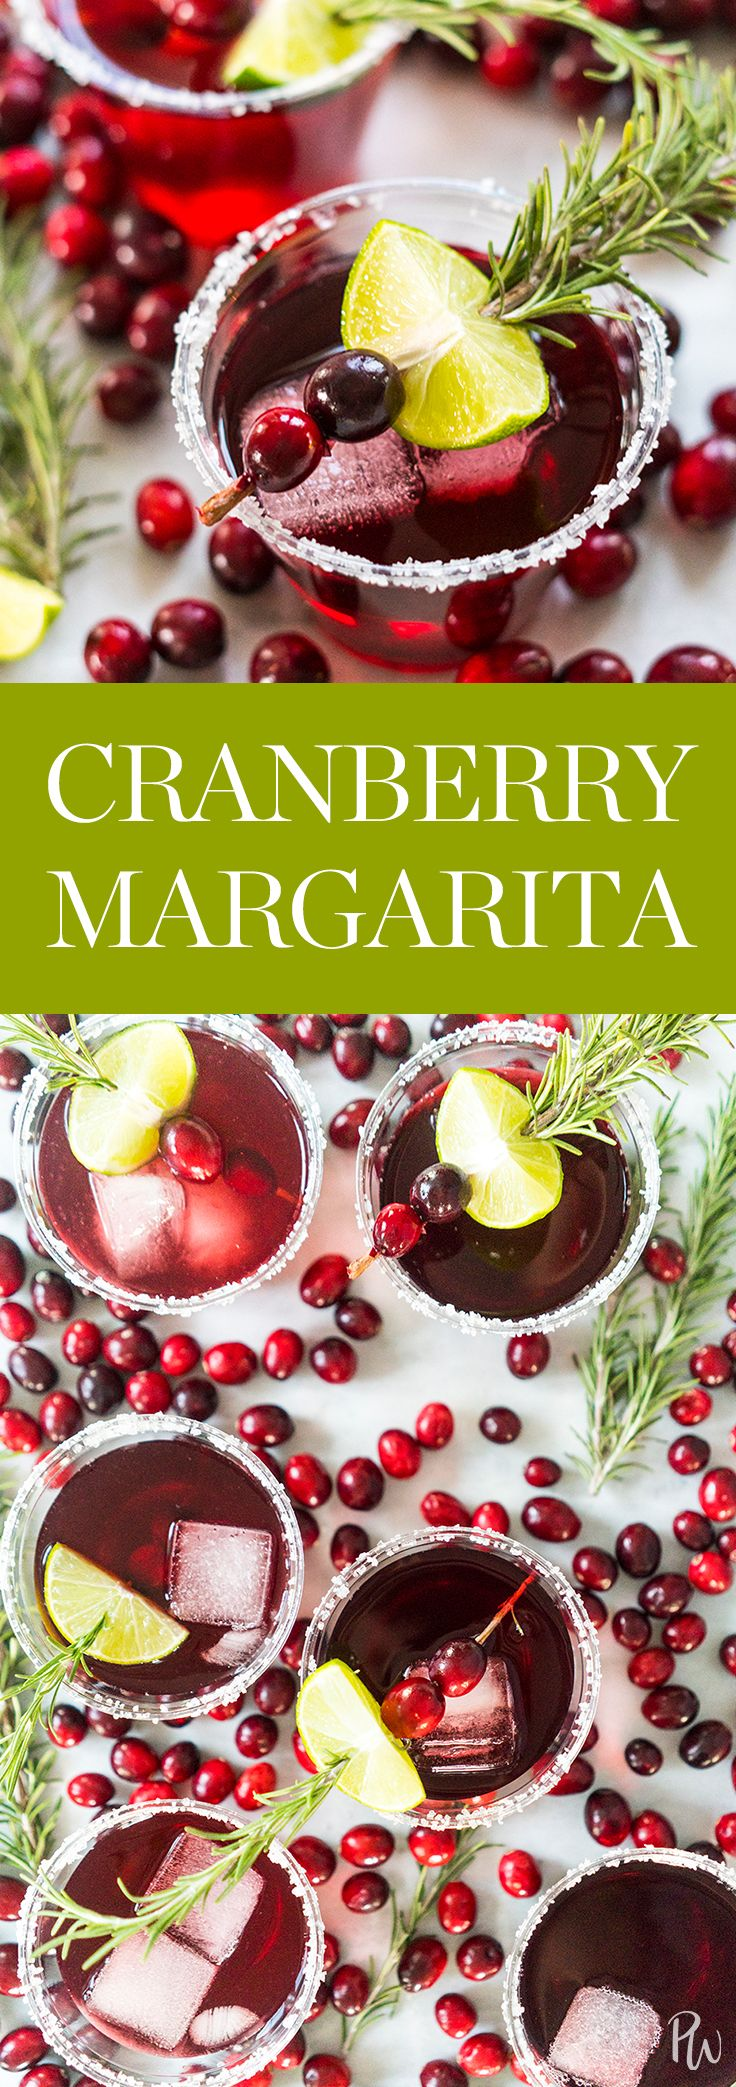 Cranberry Margarita #purewow #recipe #cooking #cocktail #food #easy